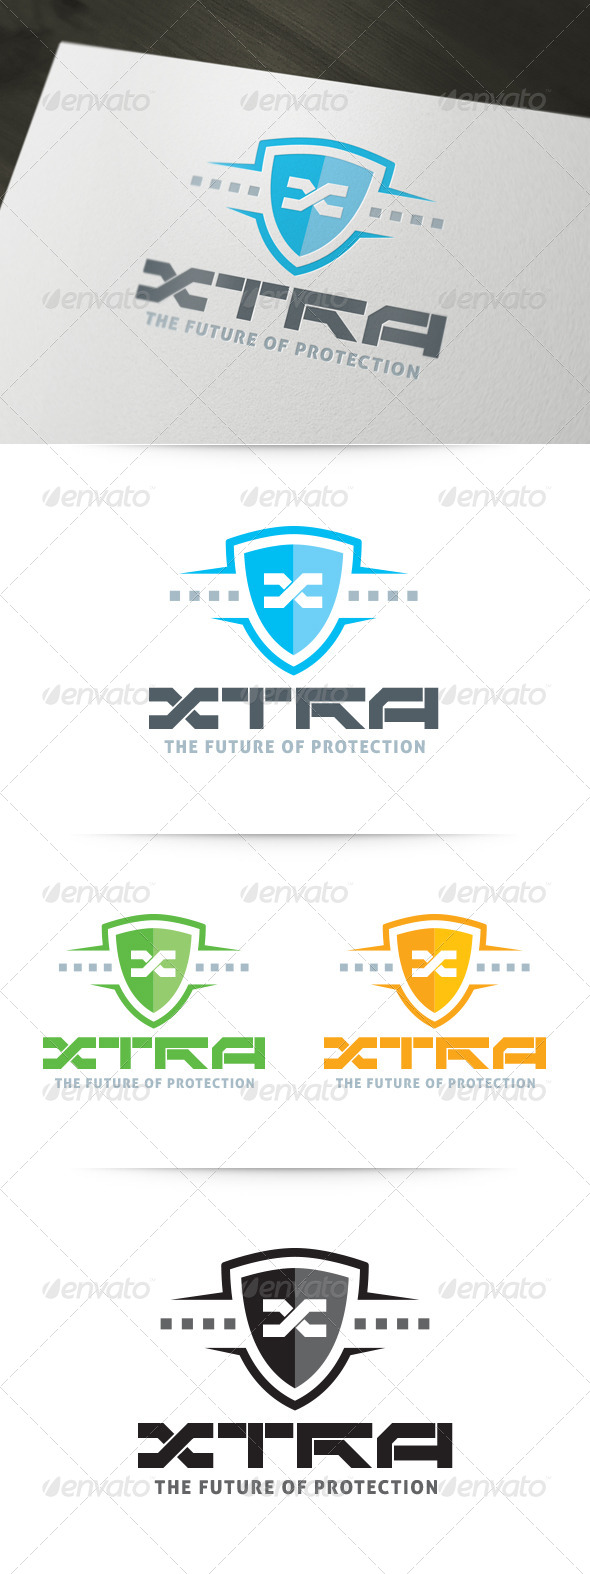 GraphicRiver XTRA Future Protection Logo 6030056